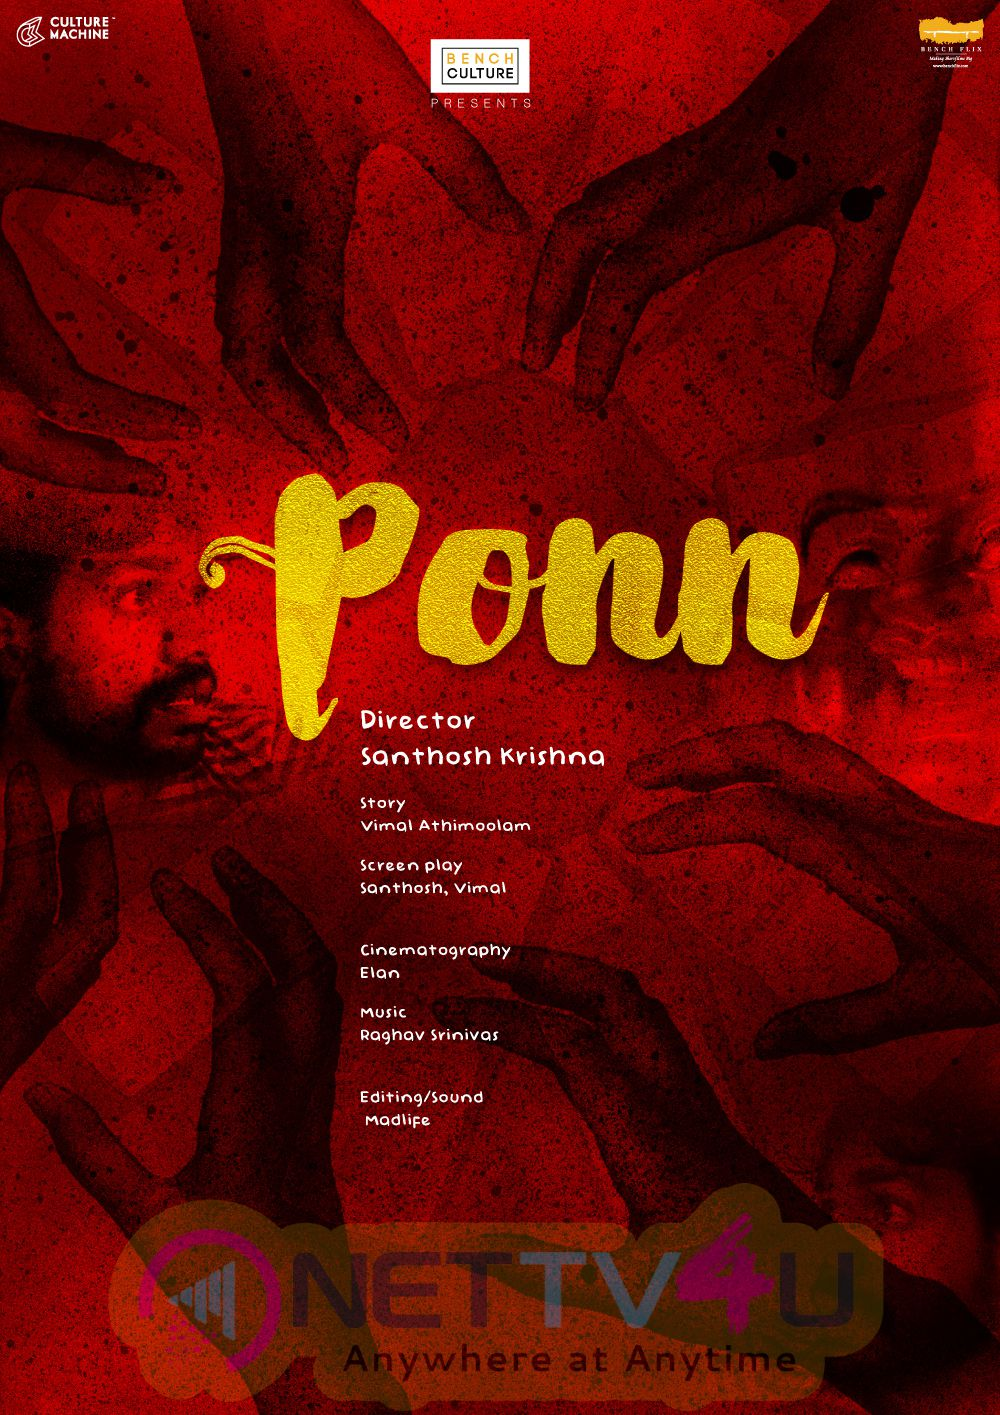 Bench Culture Release Ponn Short Film Attractive Photos & Posters